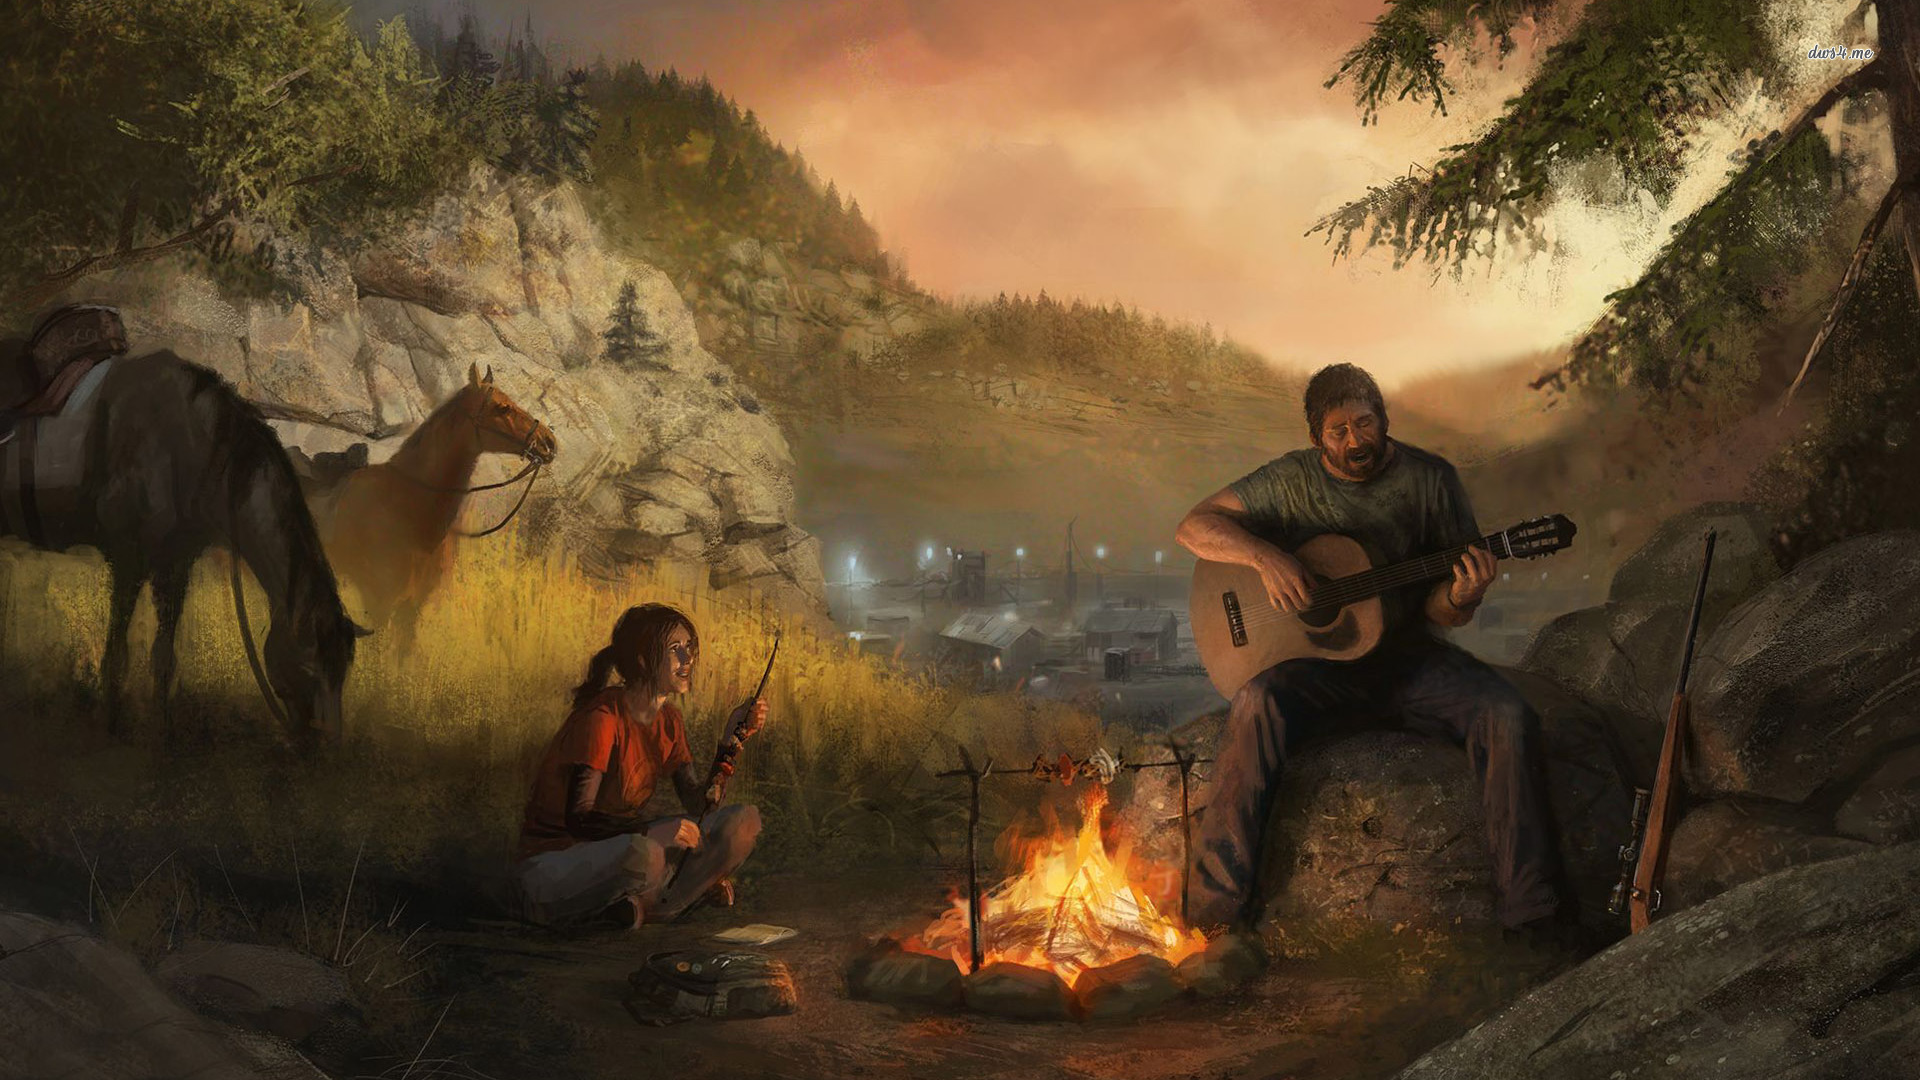 Ellie And Joel Last Of Us Joel Guitar 20302 Hd Wallpaper